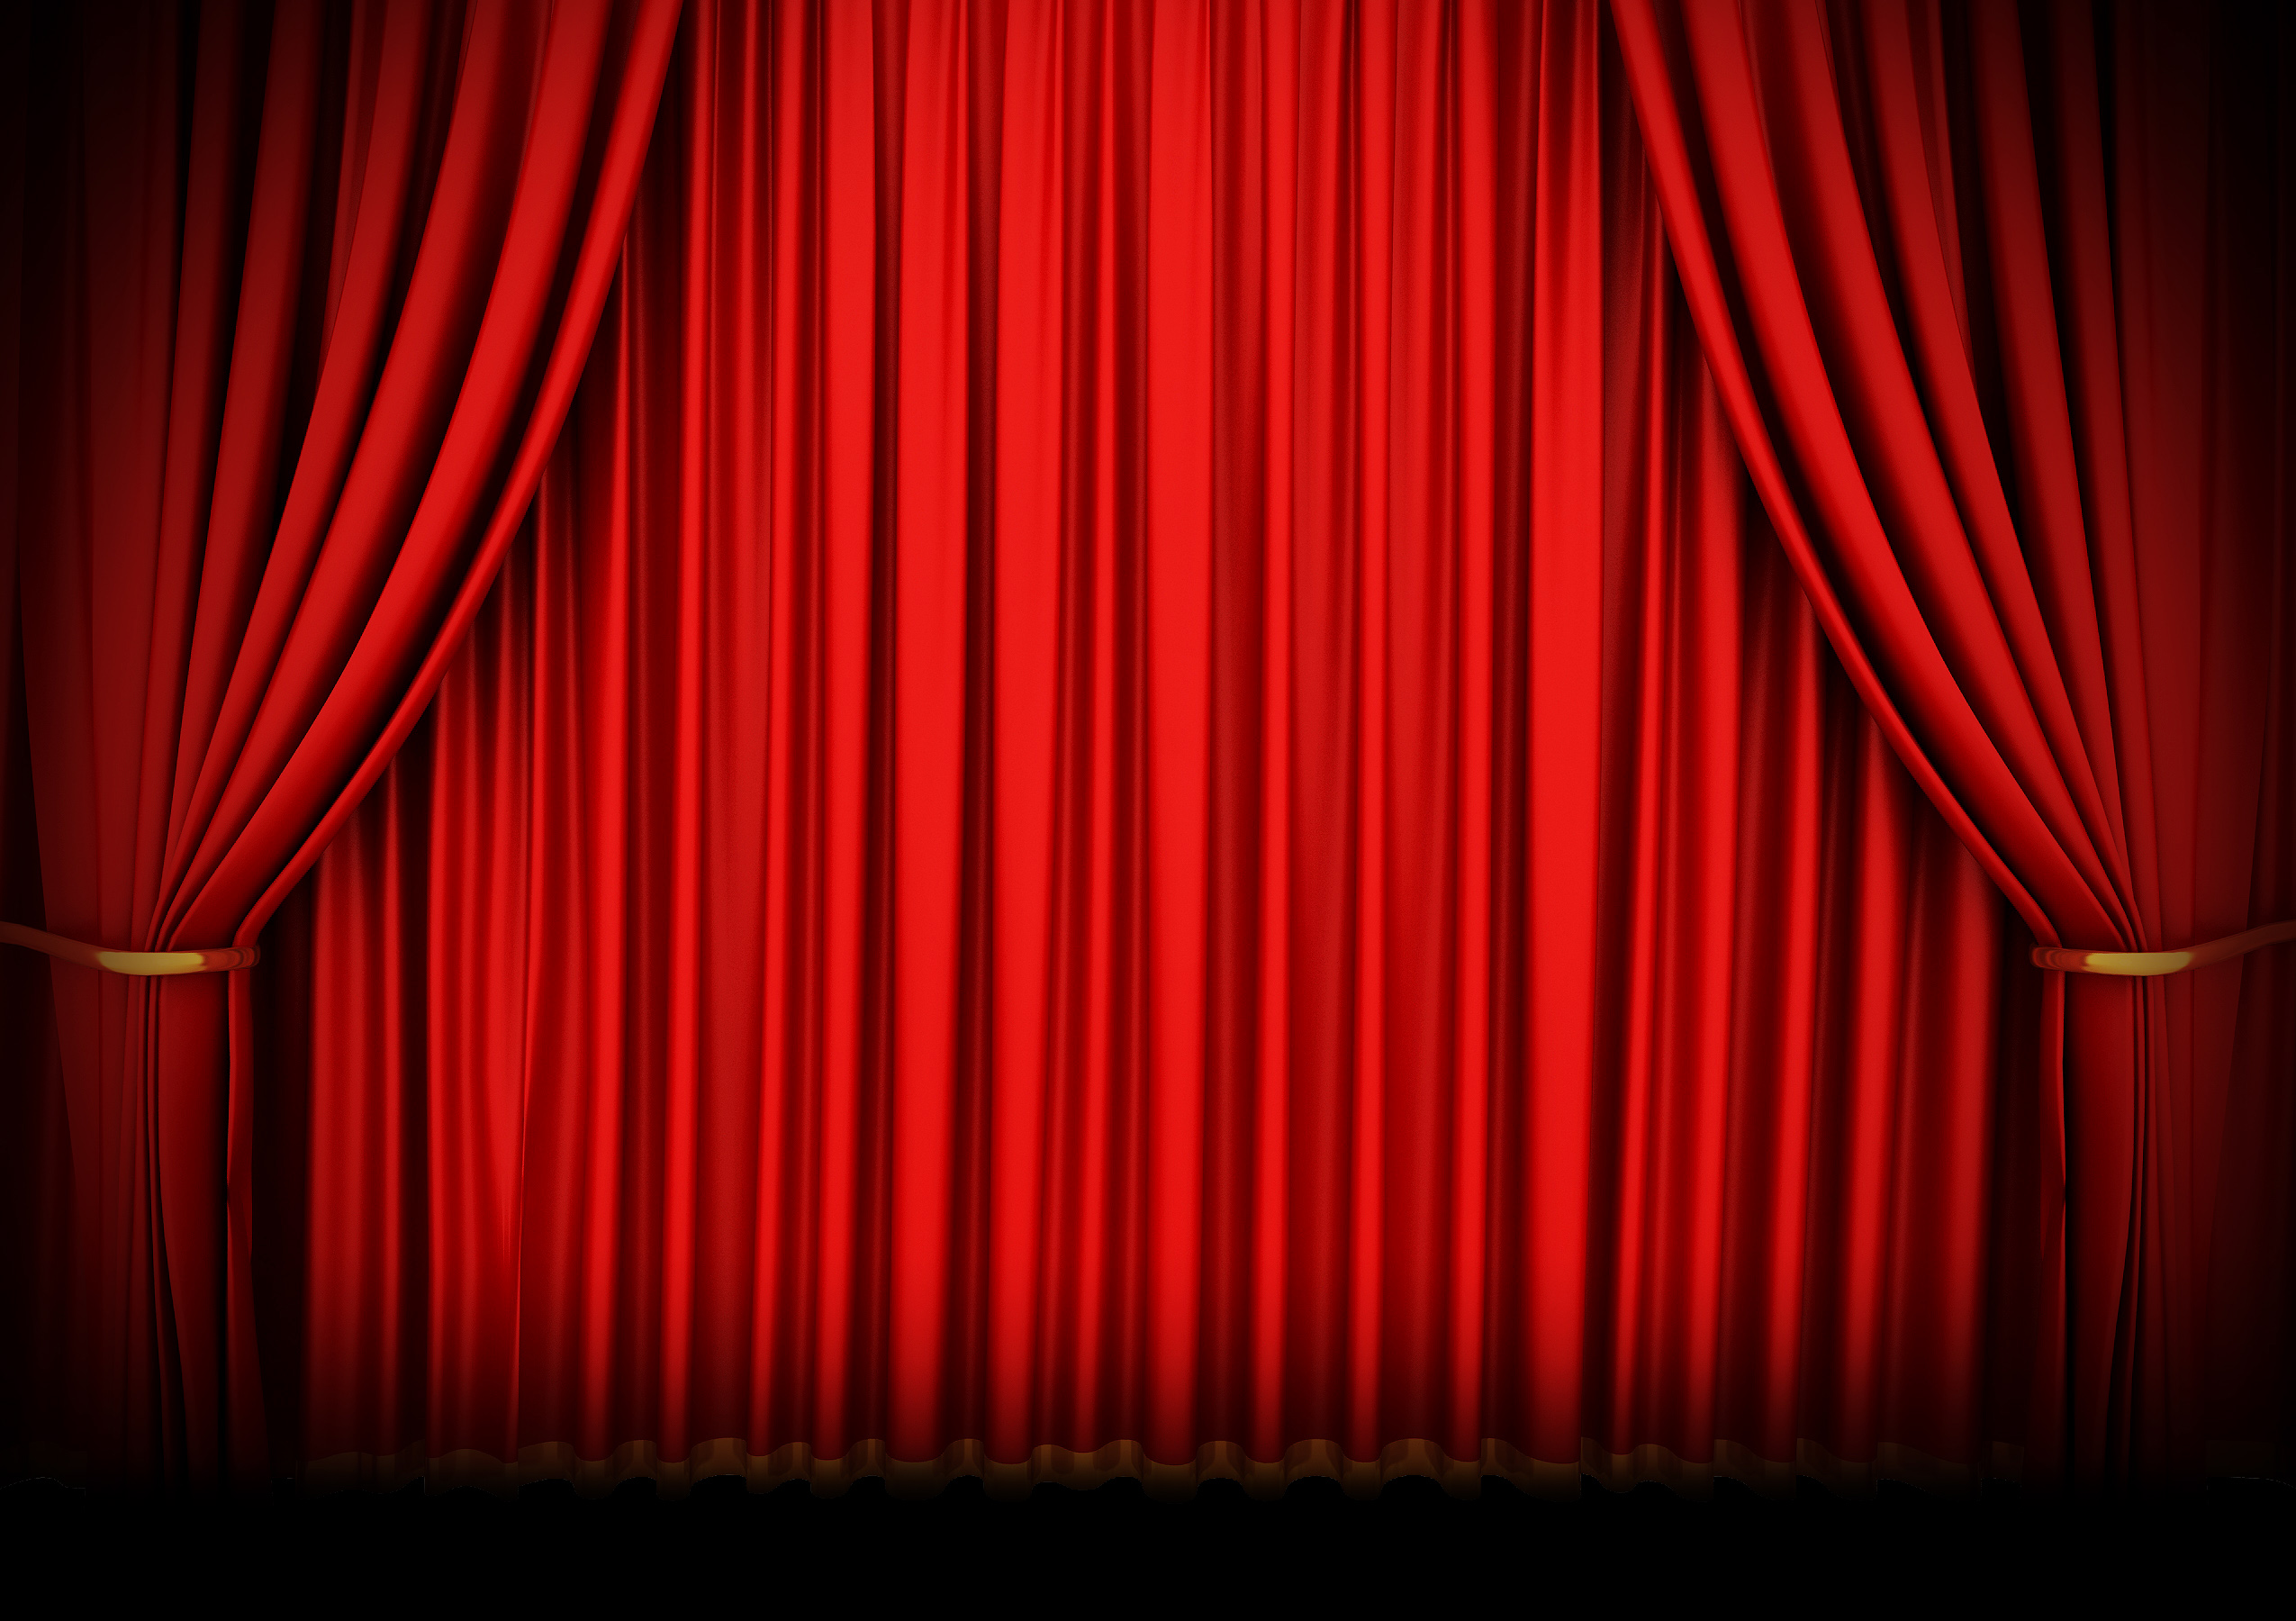 theater curtains drawing at